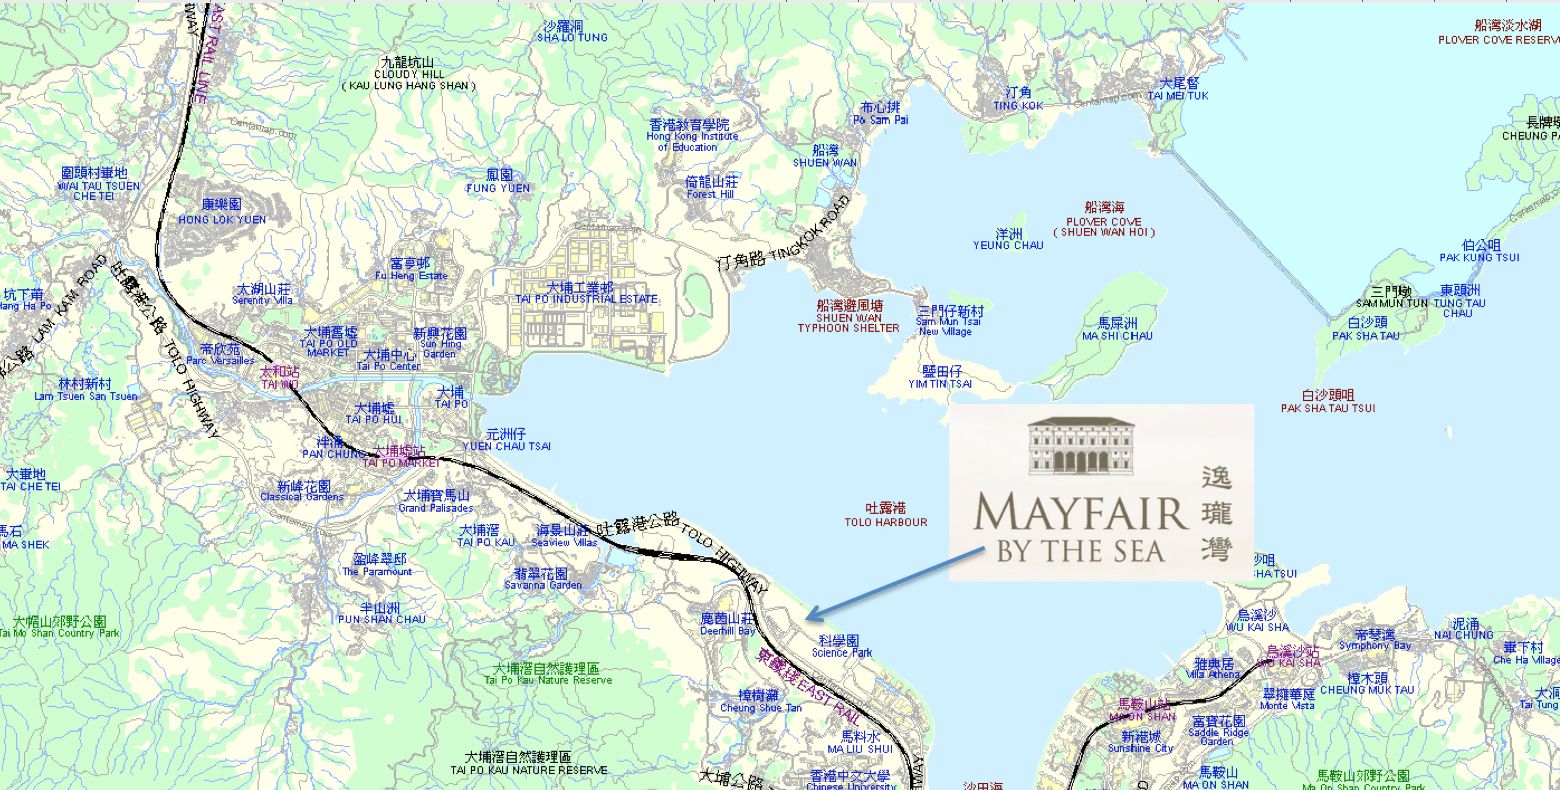 taipo_mayfairbythesea_map